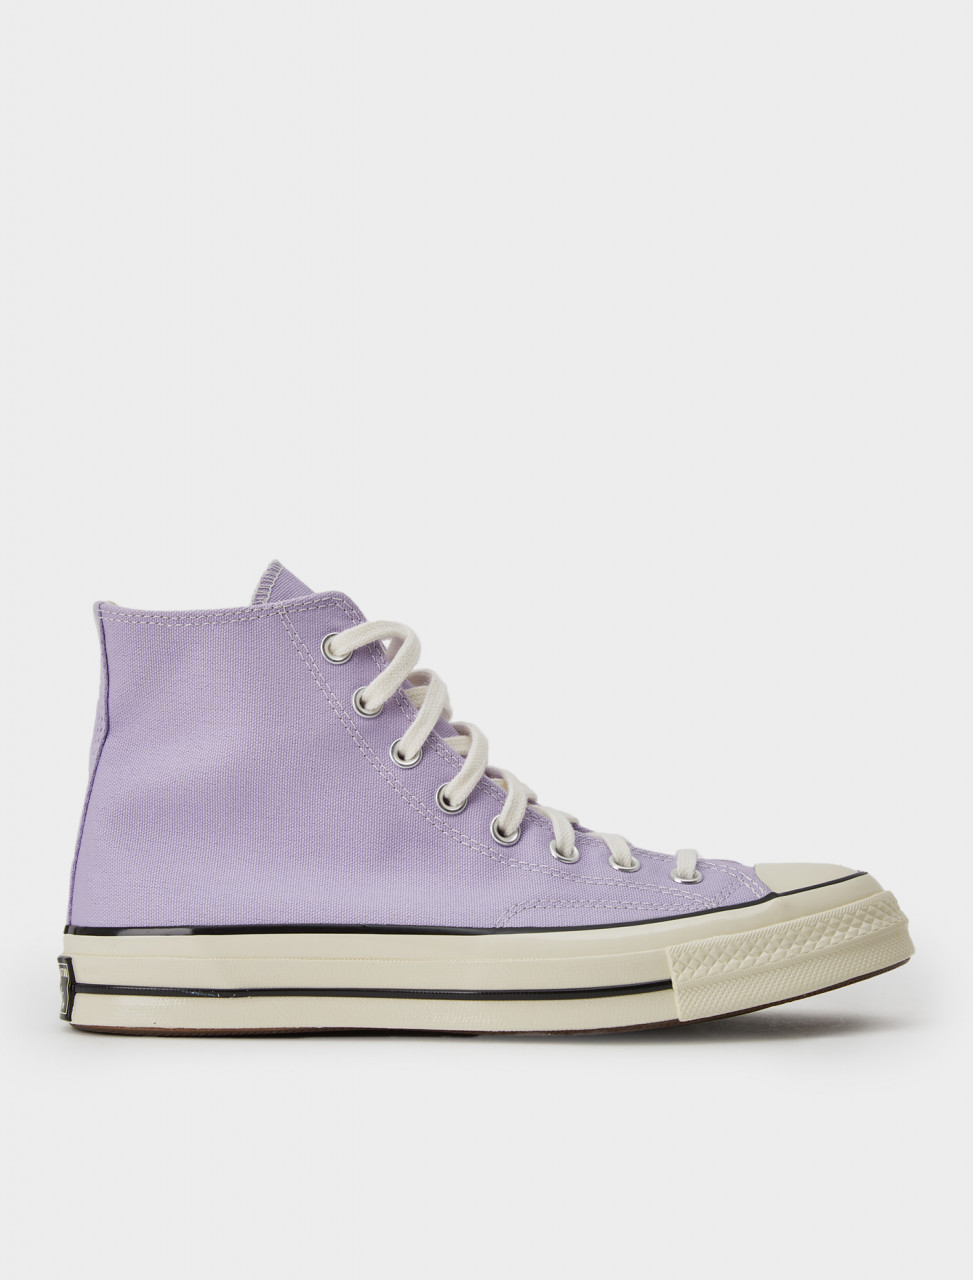 Converse Chuck 70 High Sneaker in Moonstone Violet